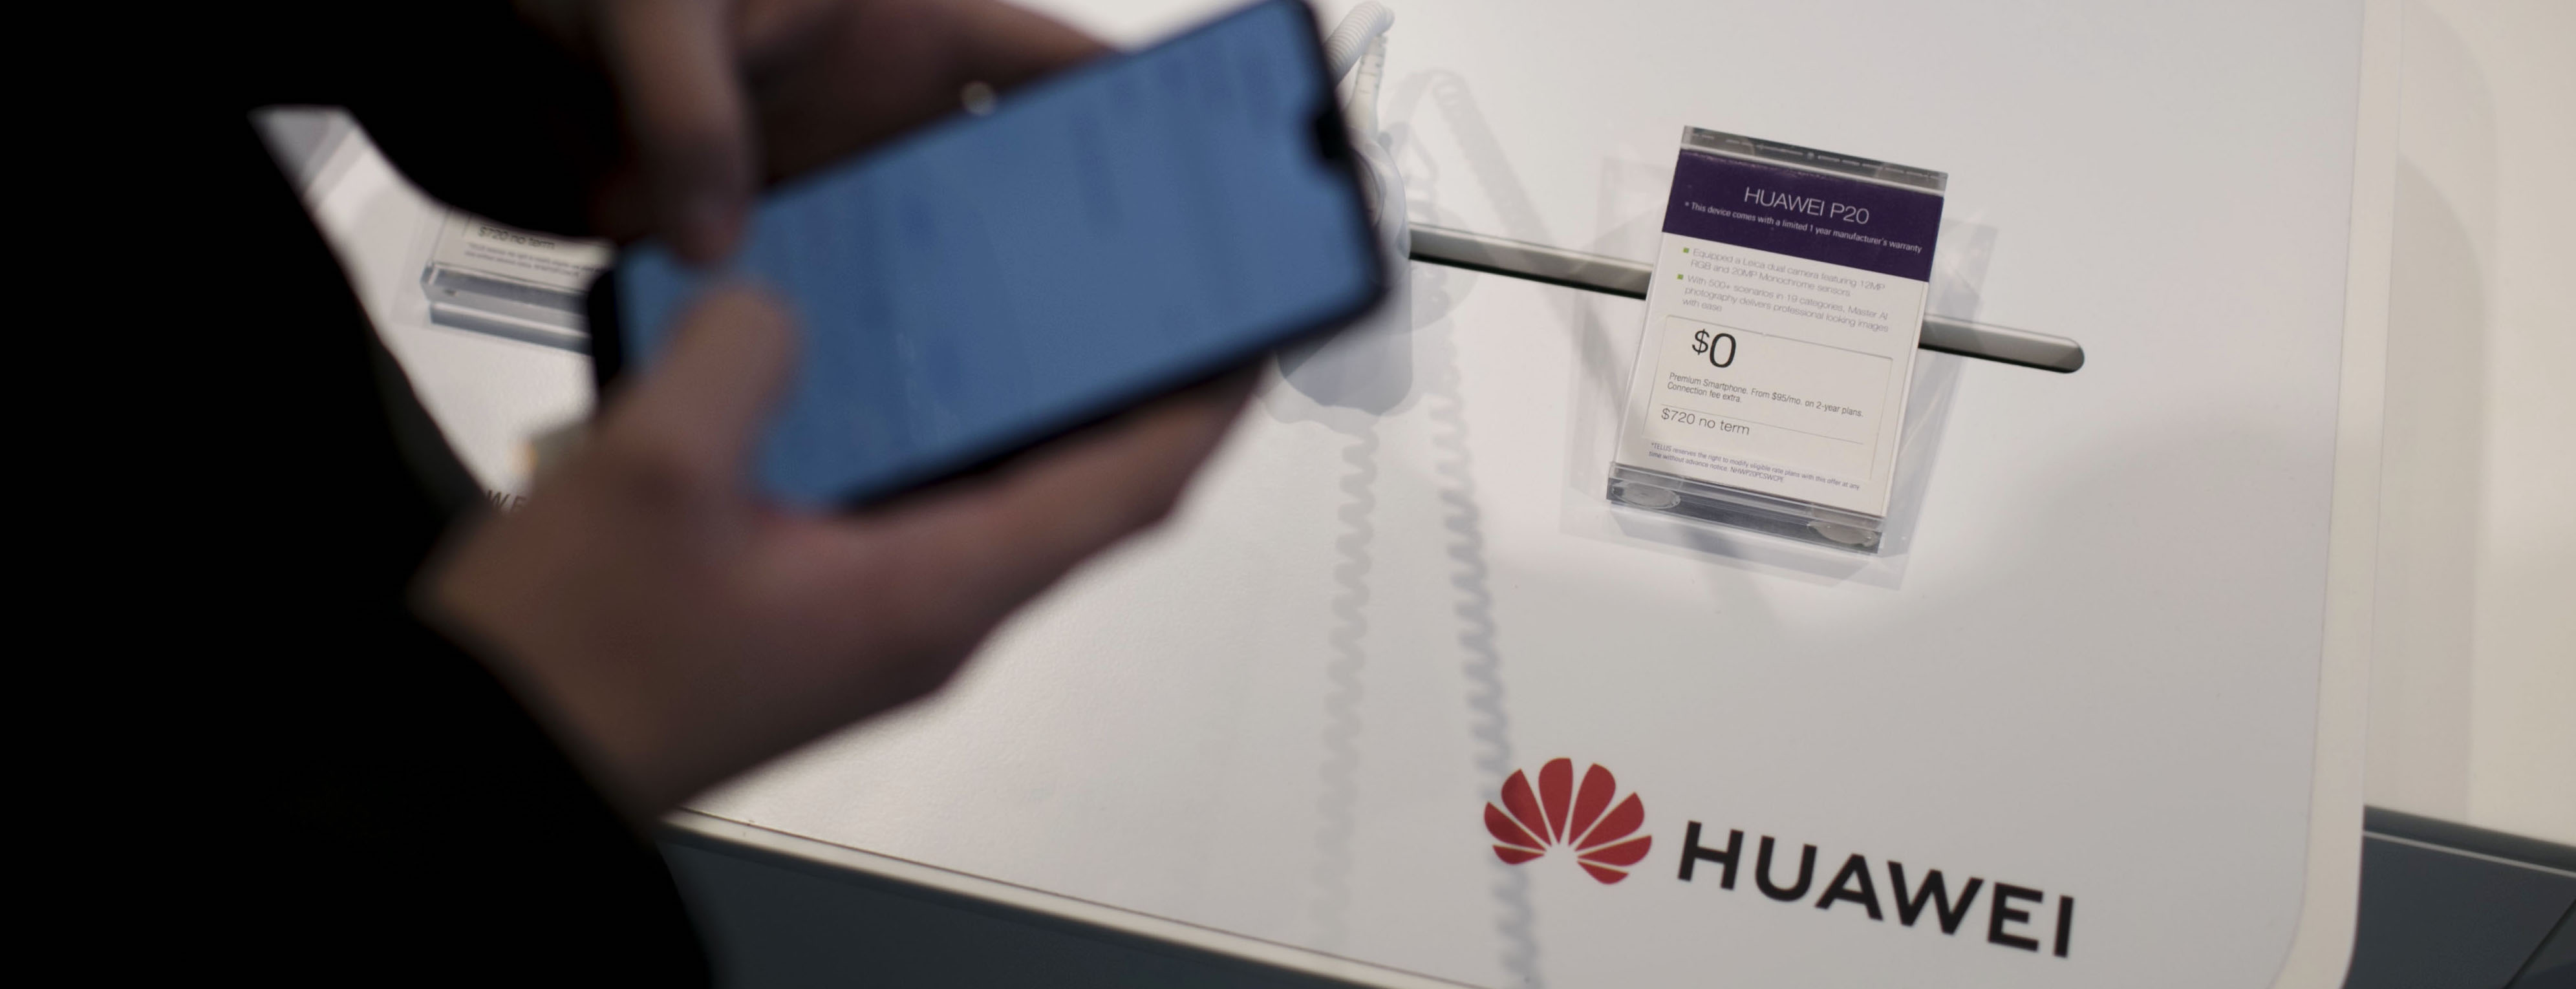 lowyinstitute.org - Kim Richard Nossal - Canada and Huawei: letting politics slip in